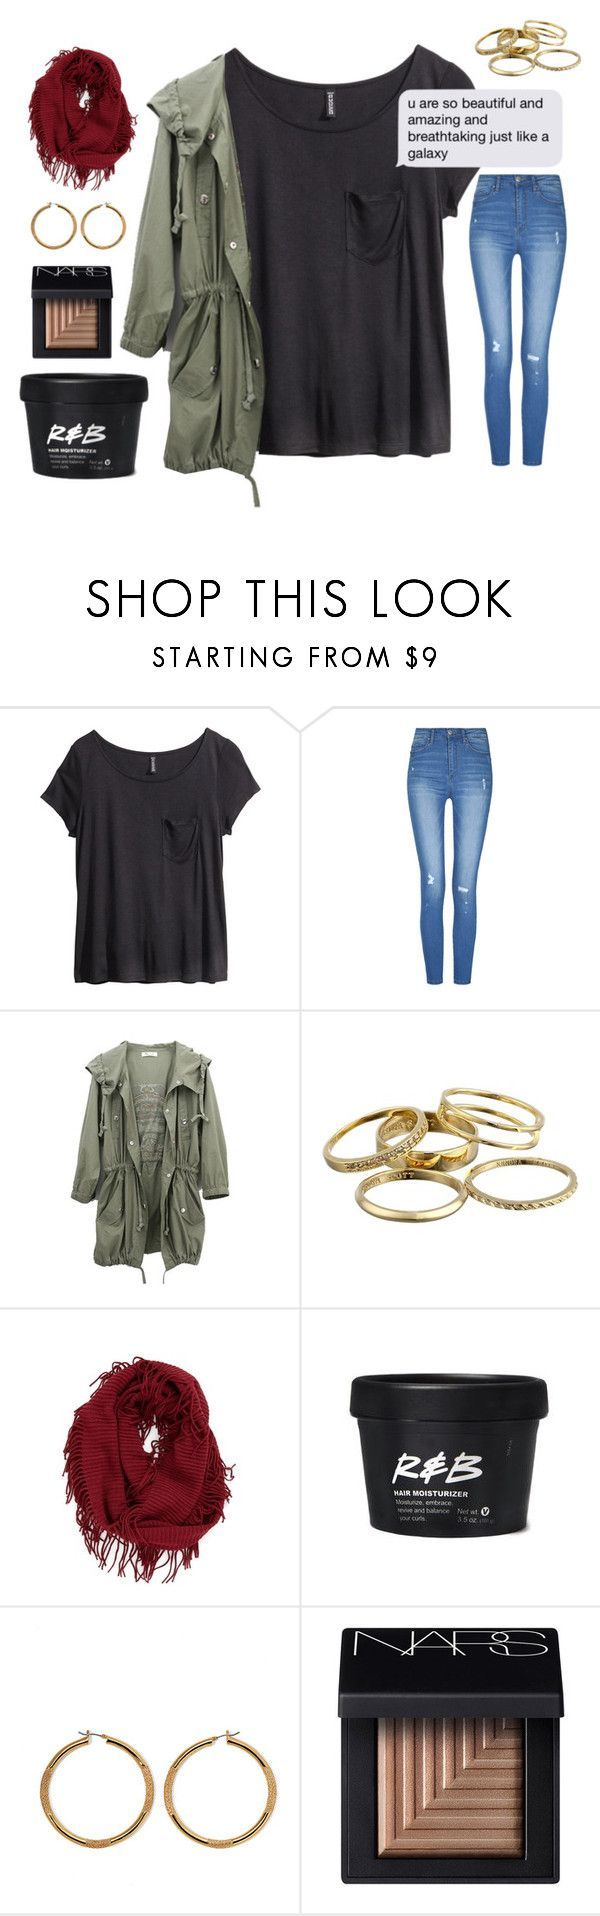 """""""Rural relaxation"""" by ringochic ❤ liked on Polyvore featuring H&M, Kendra Scott, BP., Vince Camuto and NARS Cosmetics"""